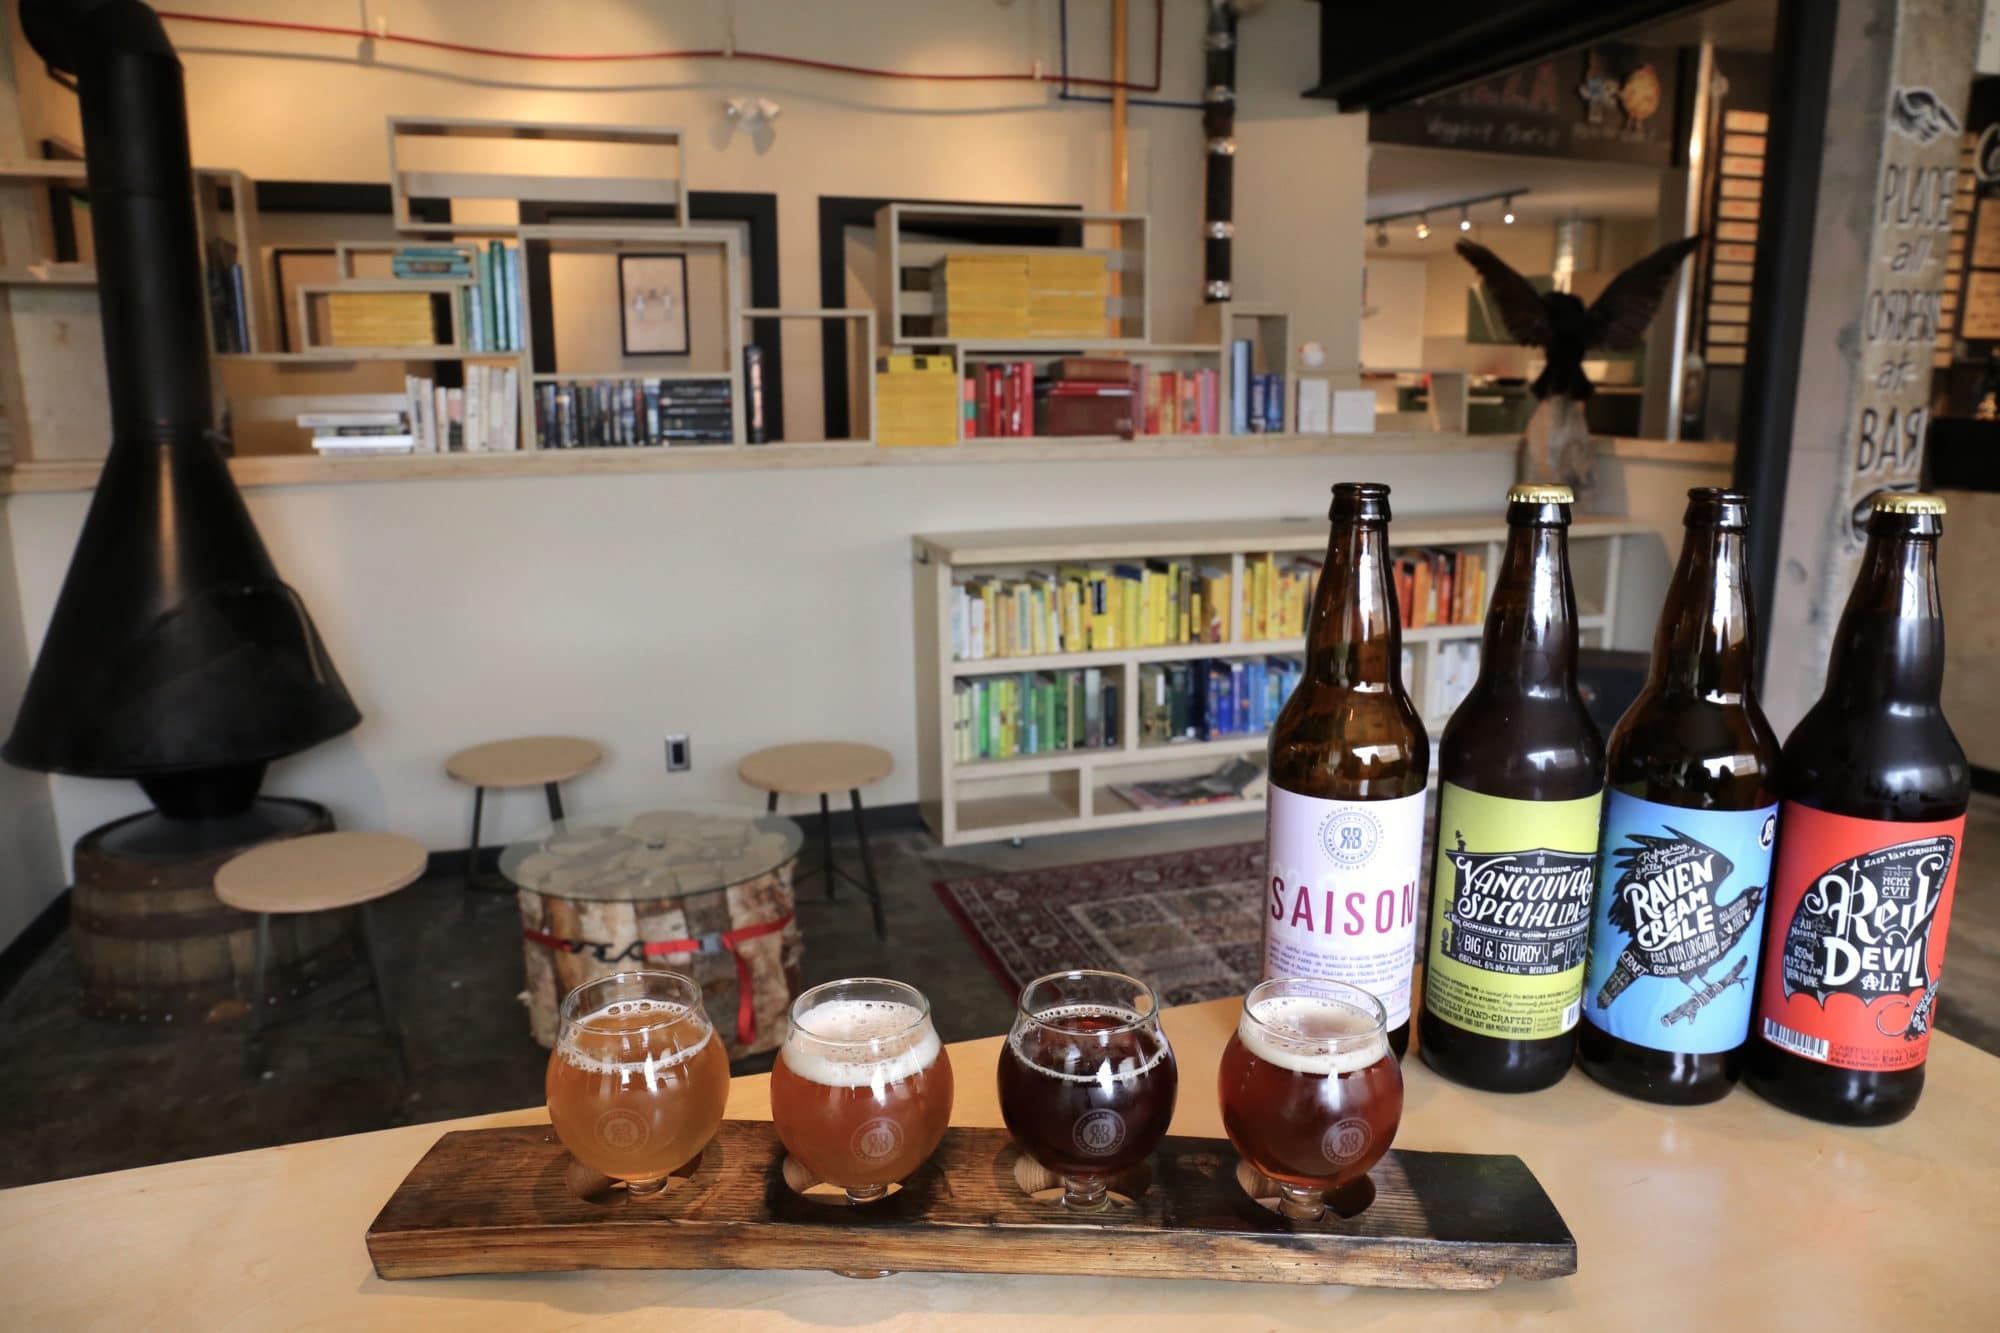 R&B Brewing was one of the first Vancouver Breweries.